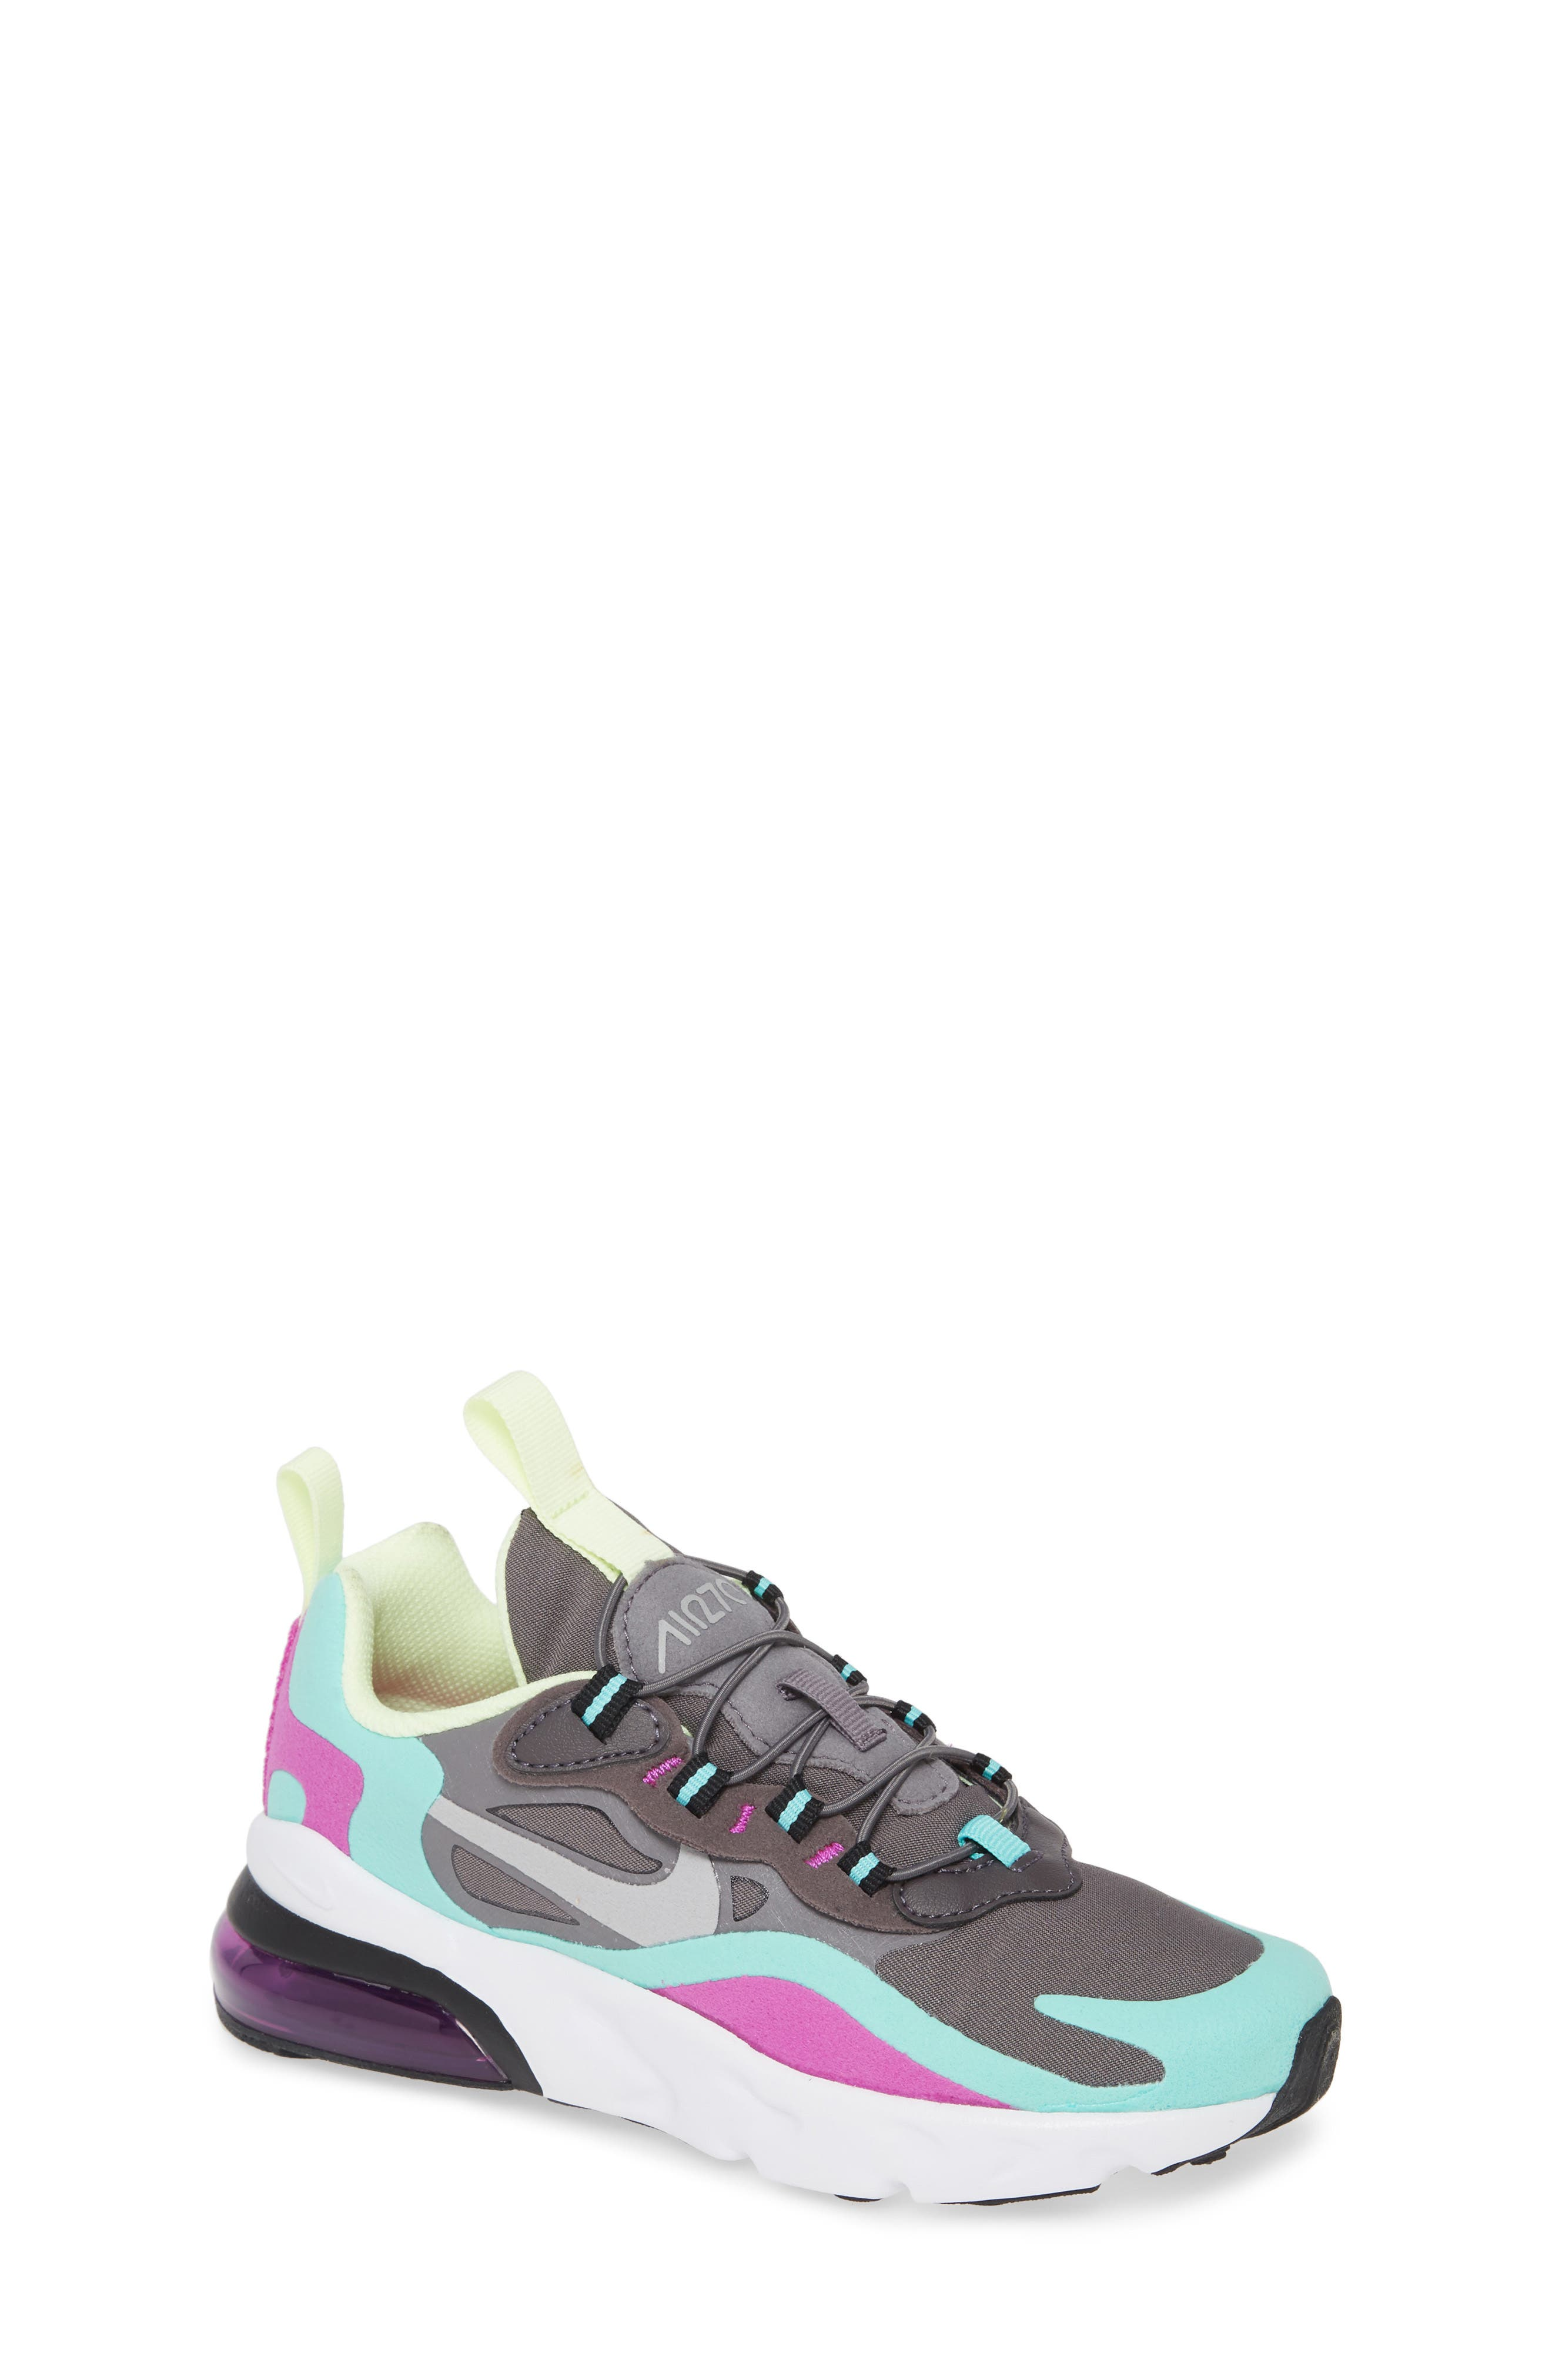 Kids Nike Air Max 270 Beige Candy Multi Color